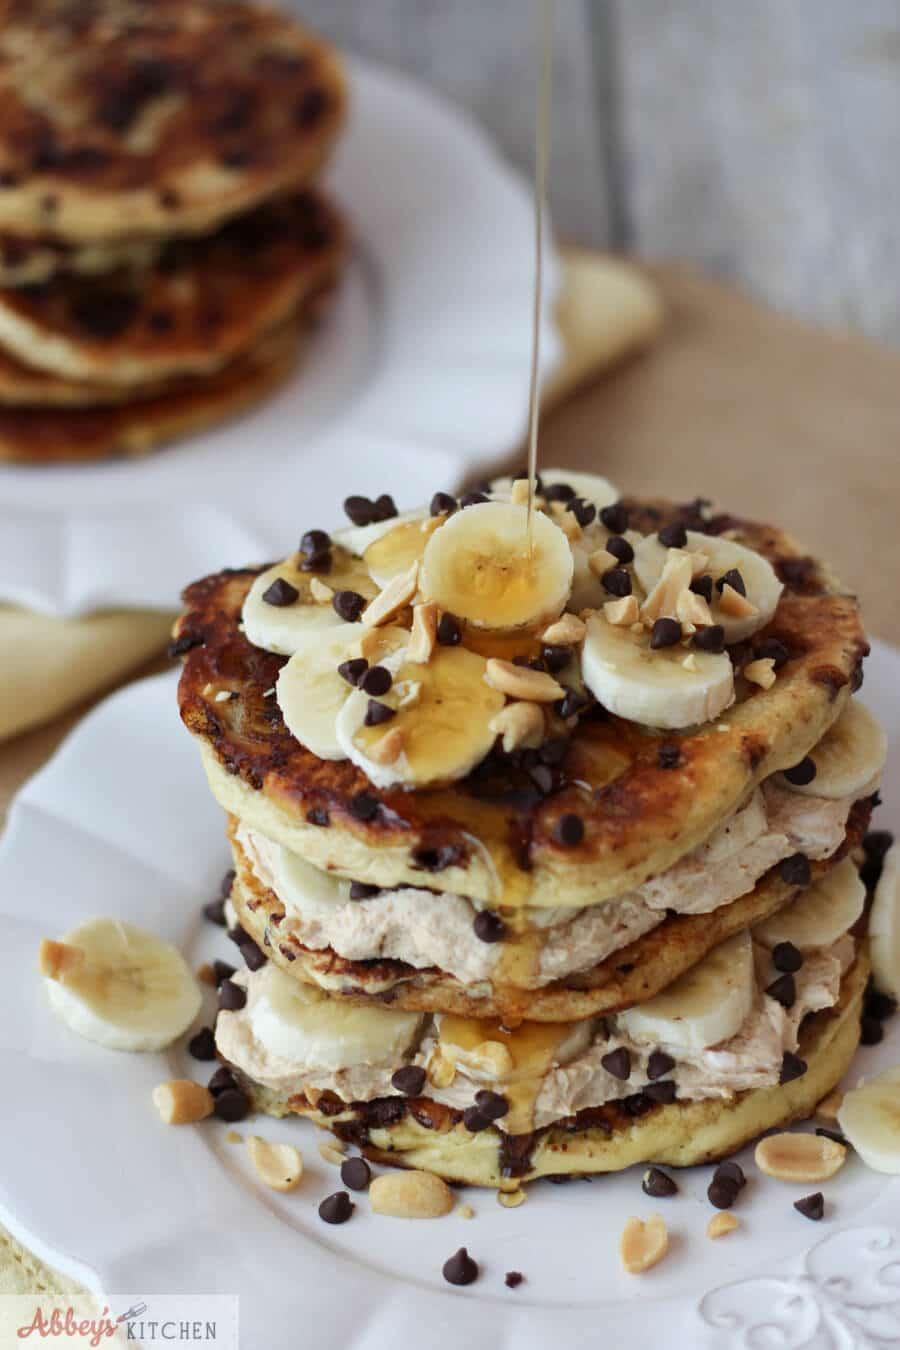 Banana protein pancakes with syrup drizzled over top.